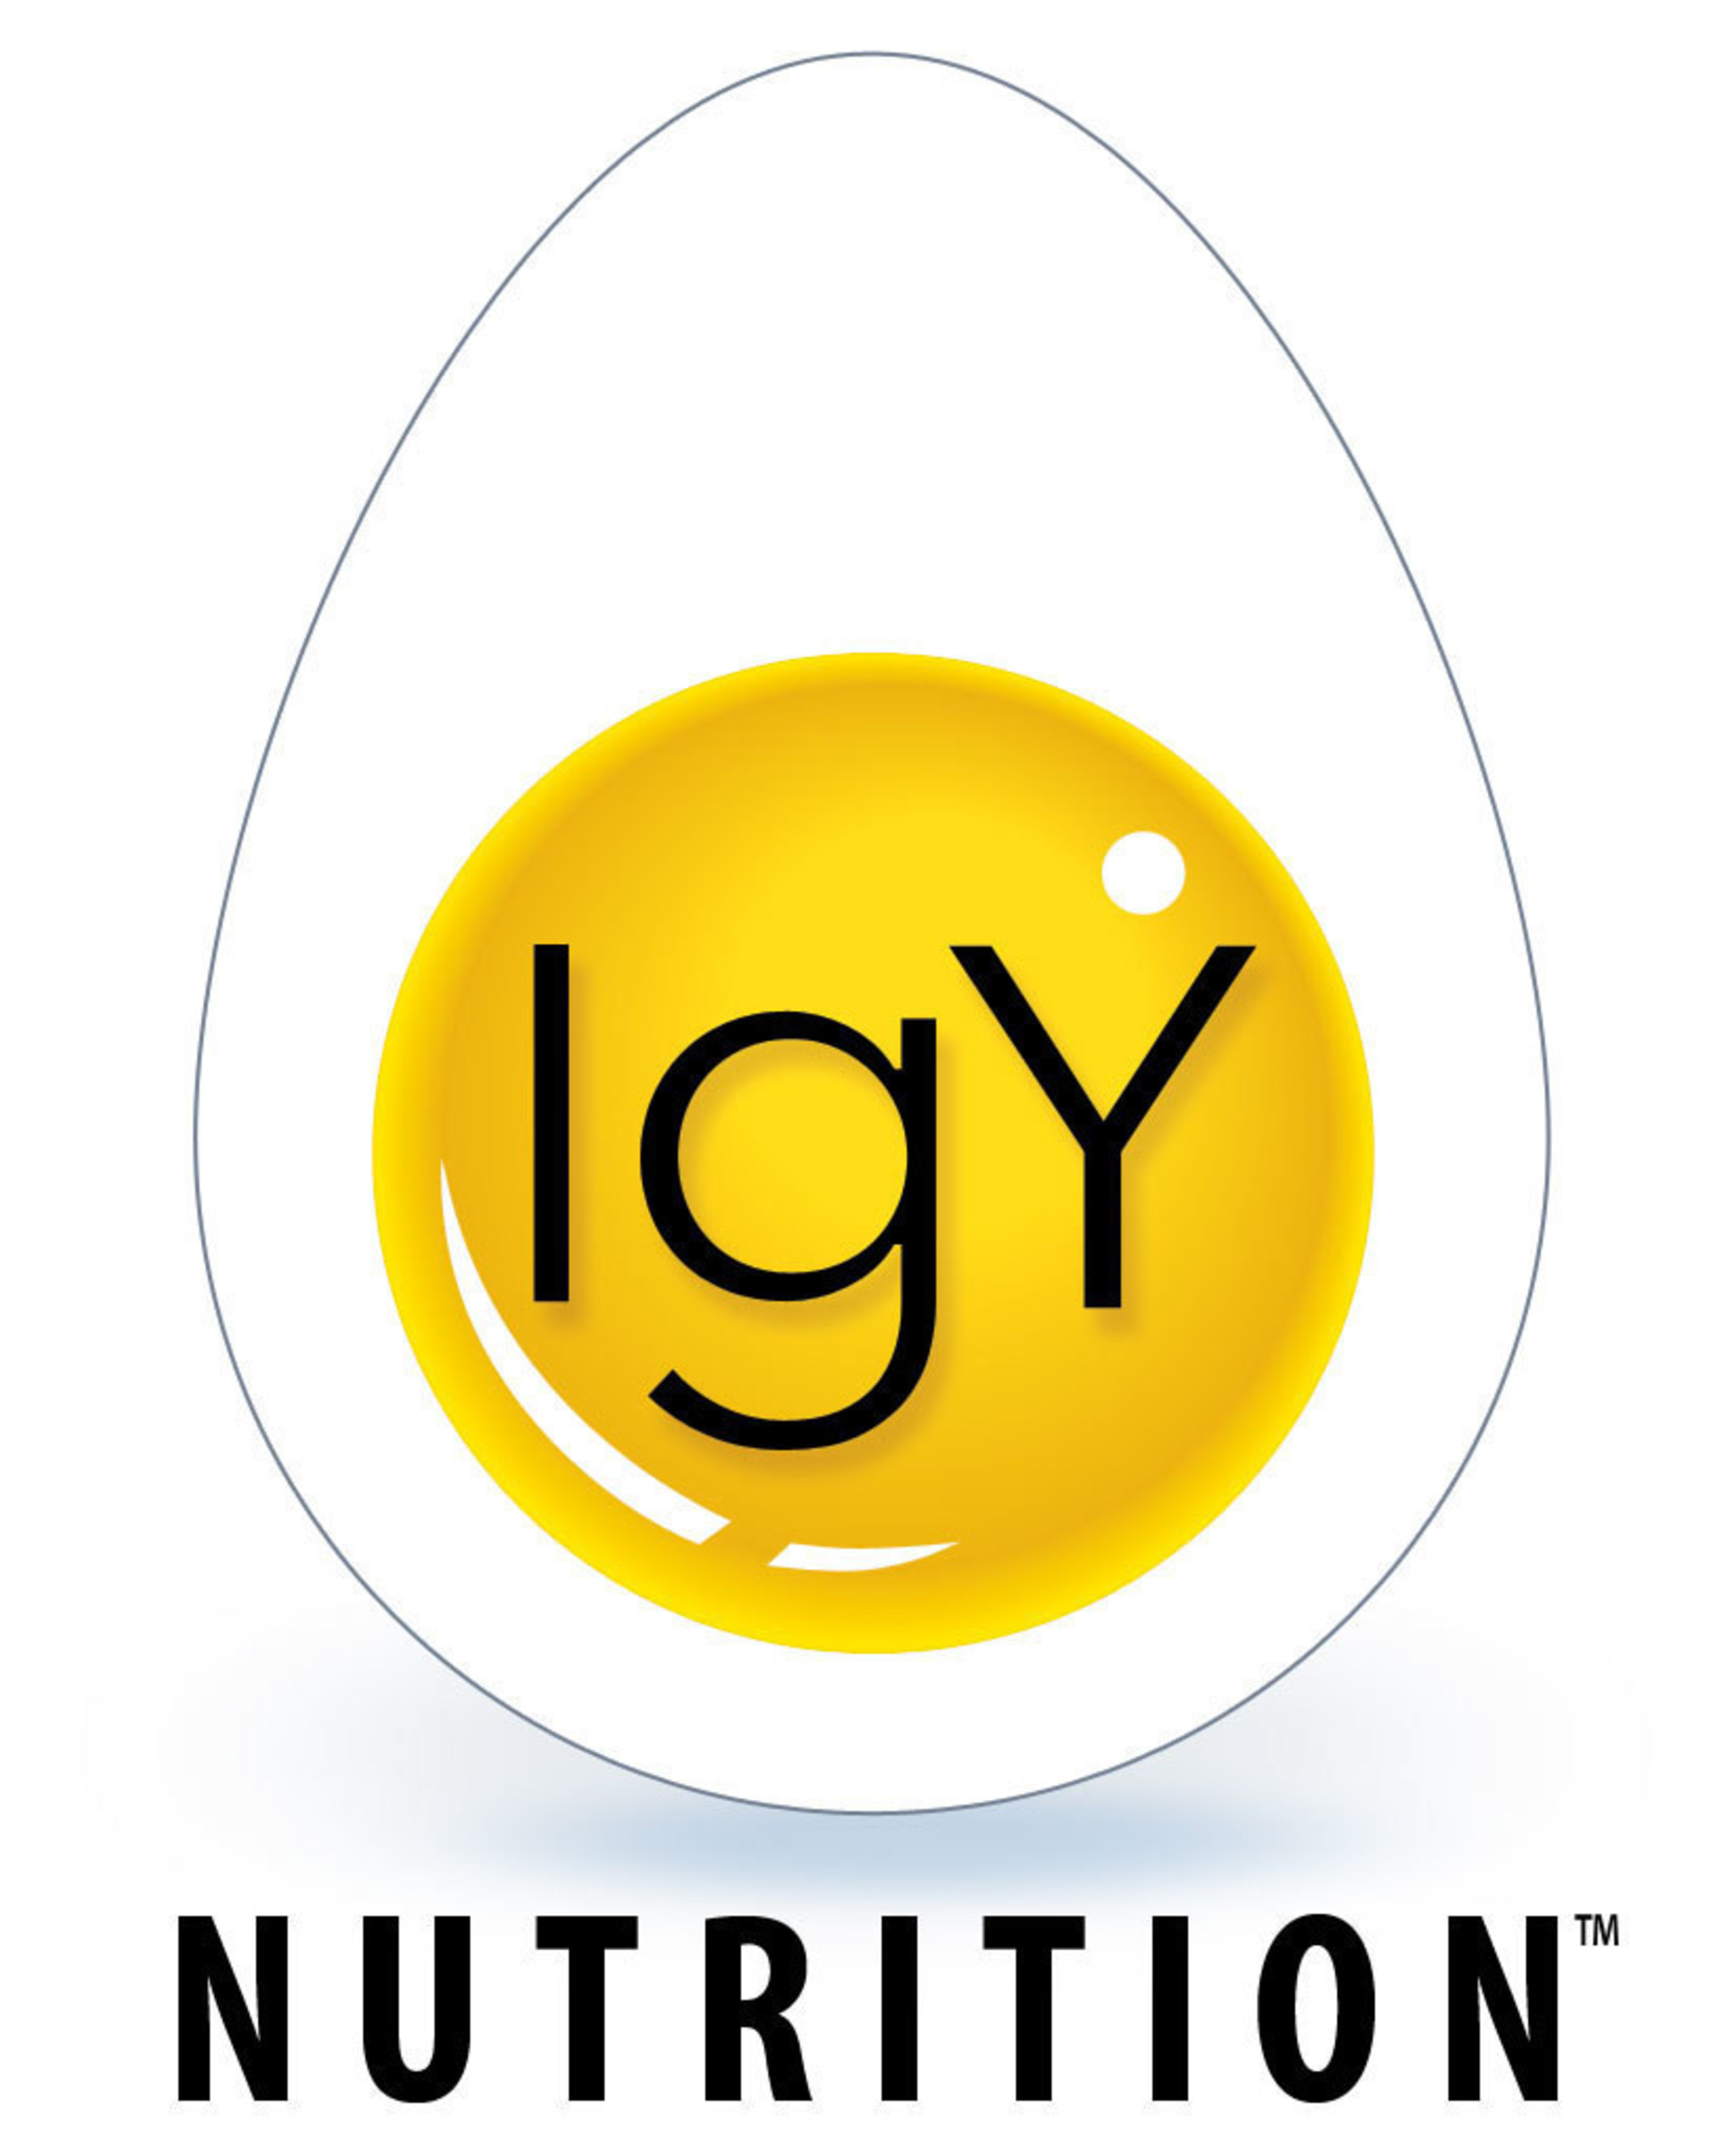 IgY Nutrition is the foremost authority on the development and production of specific immunity supplements. Our patented processes capture the capabilities of IgY to deliver targeted immune support to the digestive system for improved gastrointestinal and immune function.We produce IgY Max, a unique supplement which supports the body's natural detoxification process to reduce bacterial competition in the gut and promote the growth of pre-existing beneficial bacteria.